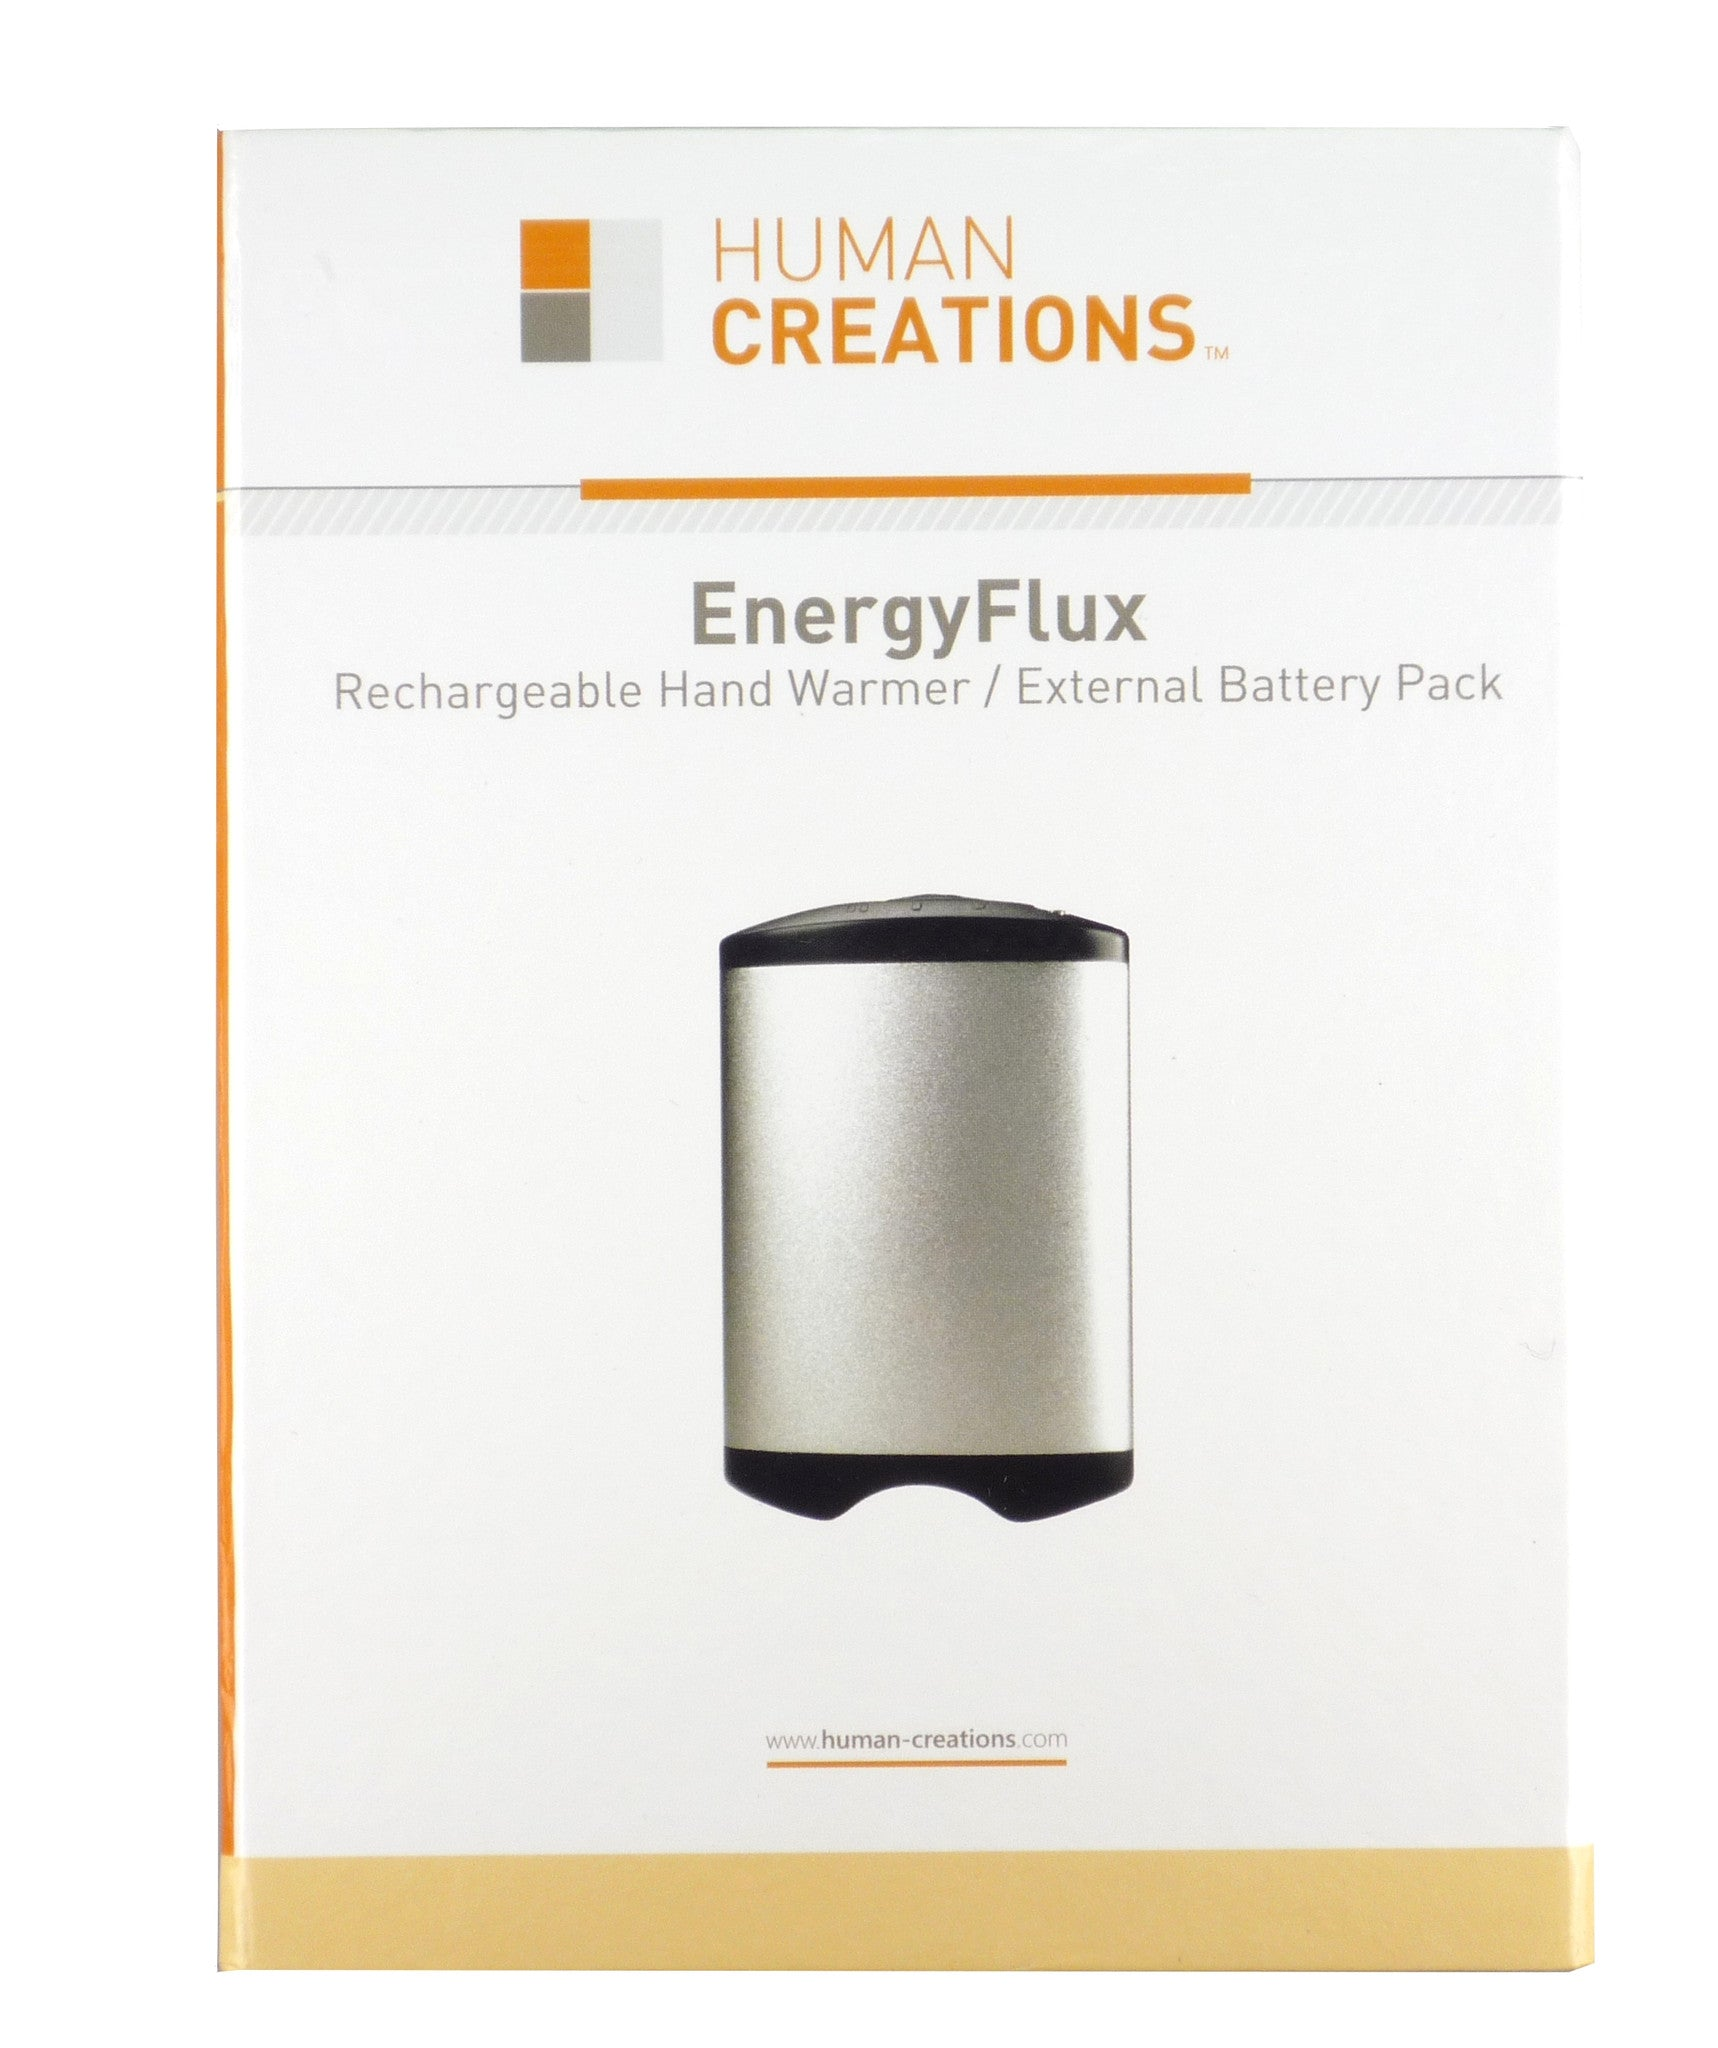 EnergyFlux 4400mAh Rechargeable Hand Warmer / USB External Battery Pack